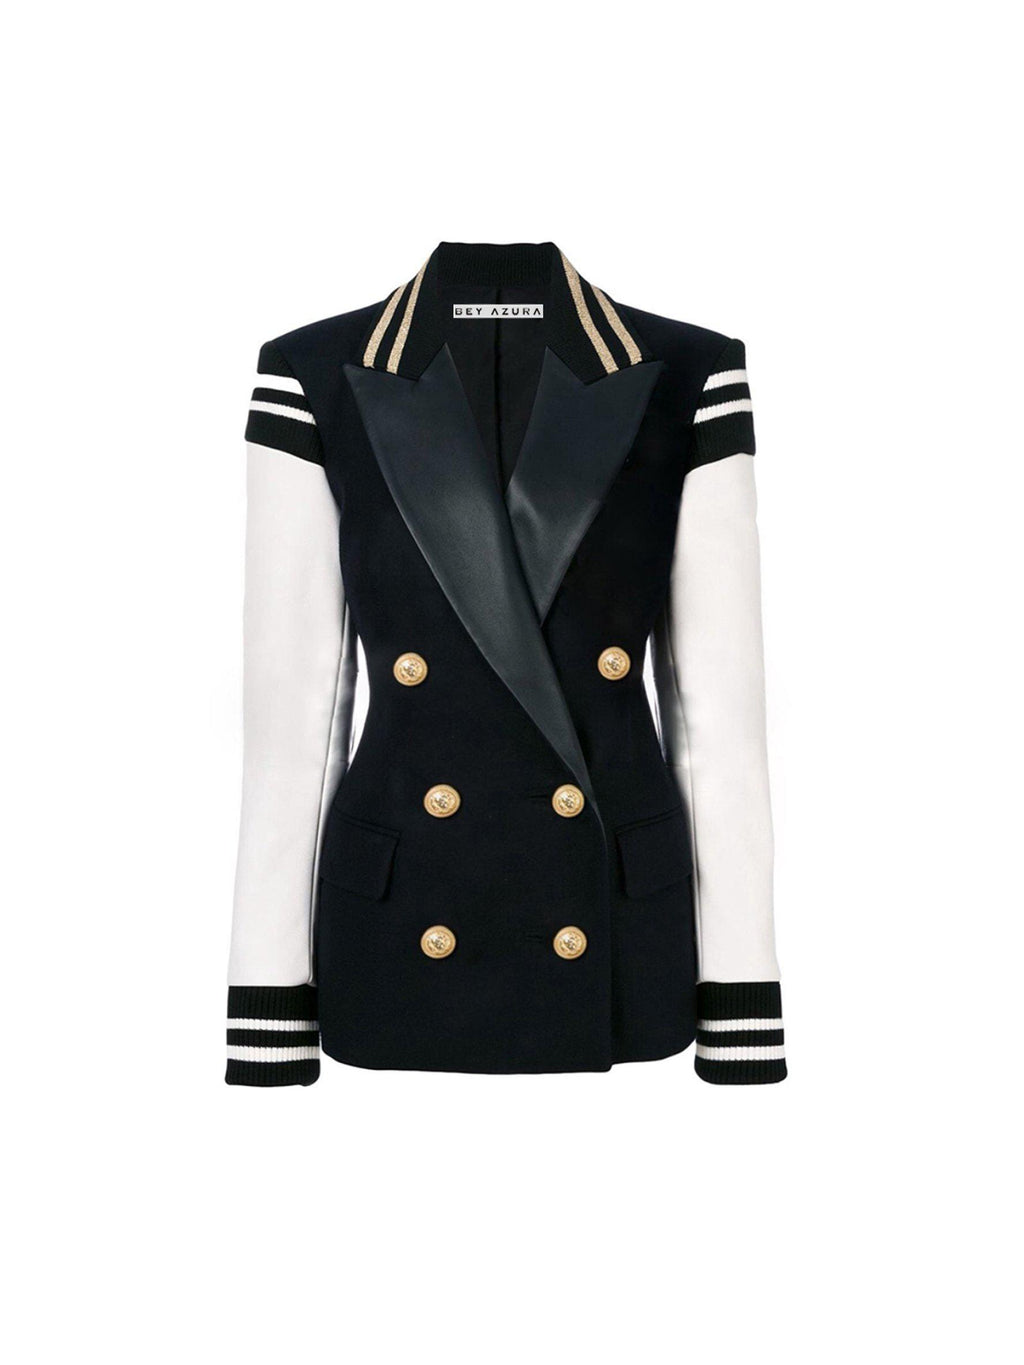 BLACK AND WHITE DOUBLE BREASTED BLAZER - BEYAZURA.COM